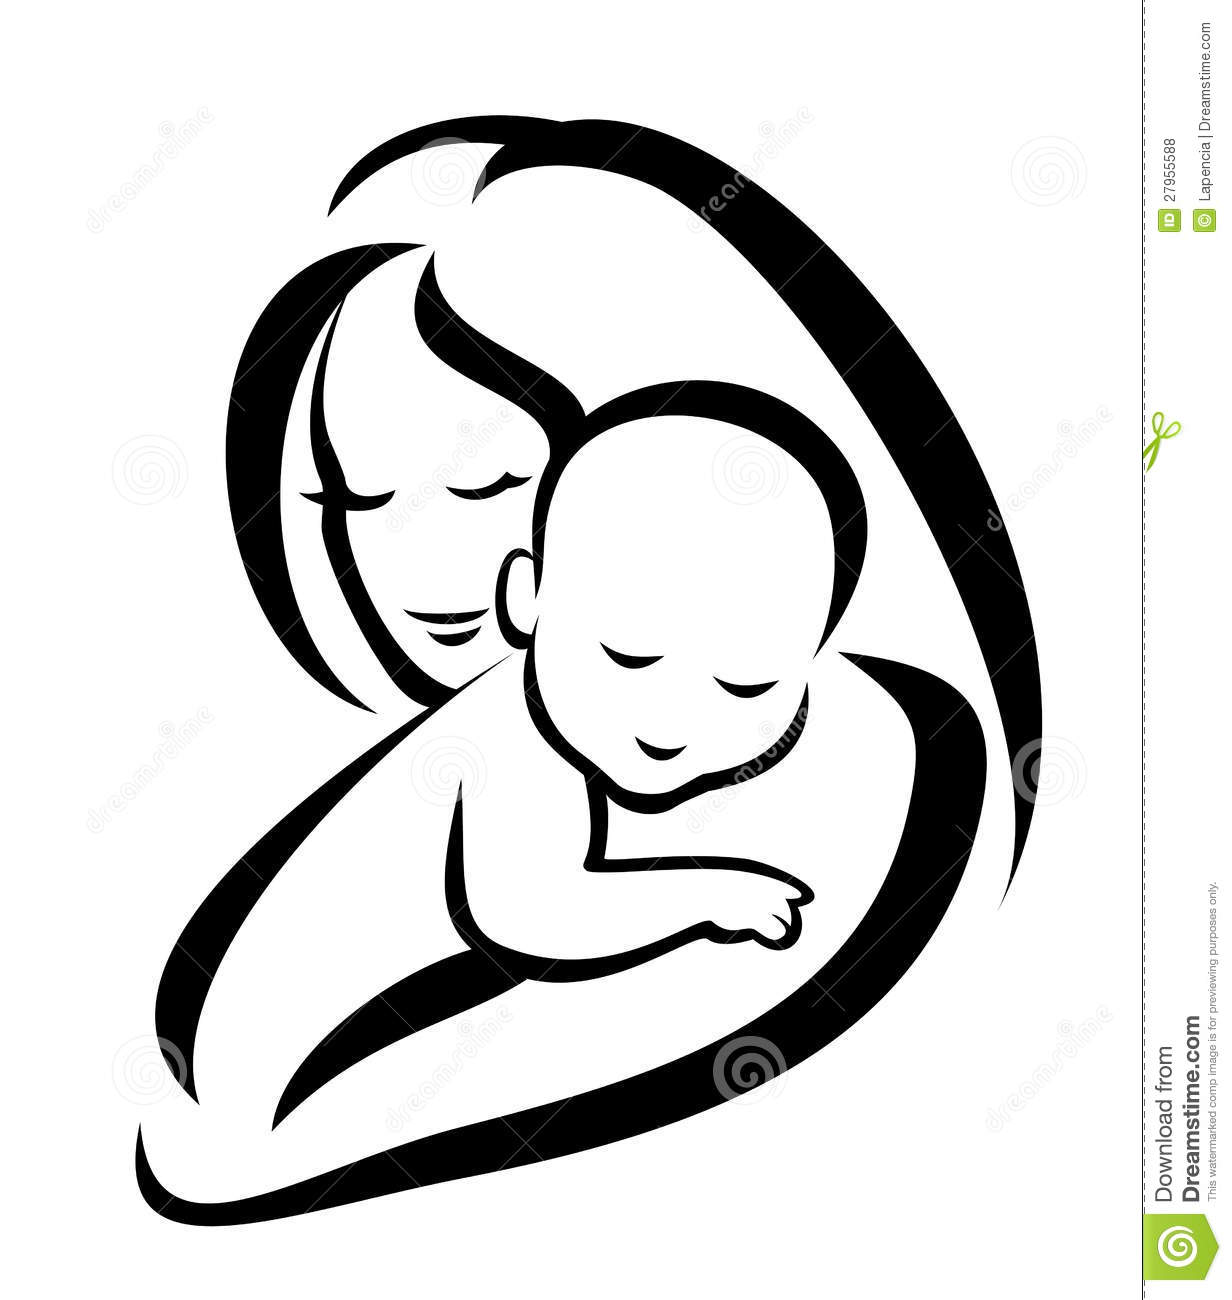 Mother And Baby clipart line art Savoronmorehead Baby Savoronmorehead Clipart Baby